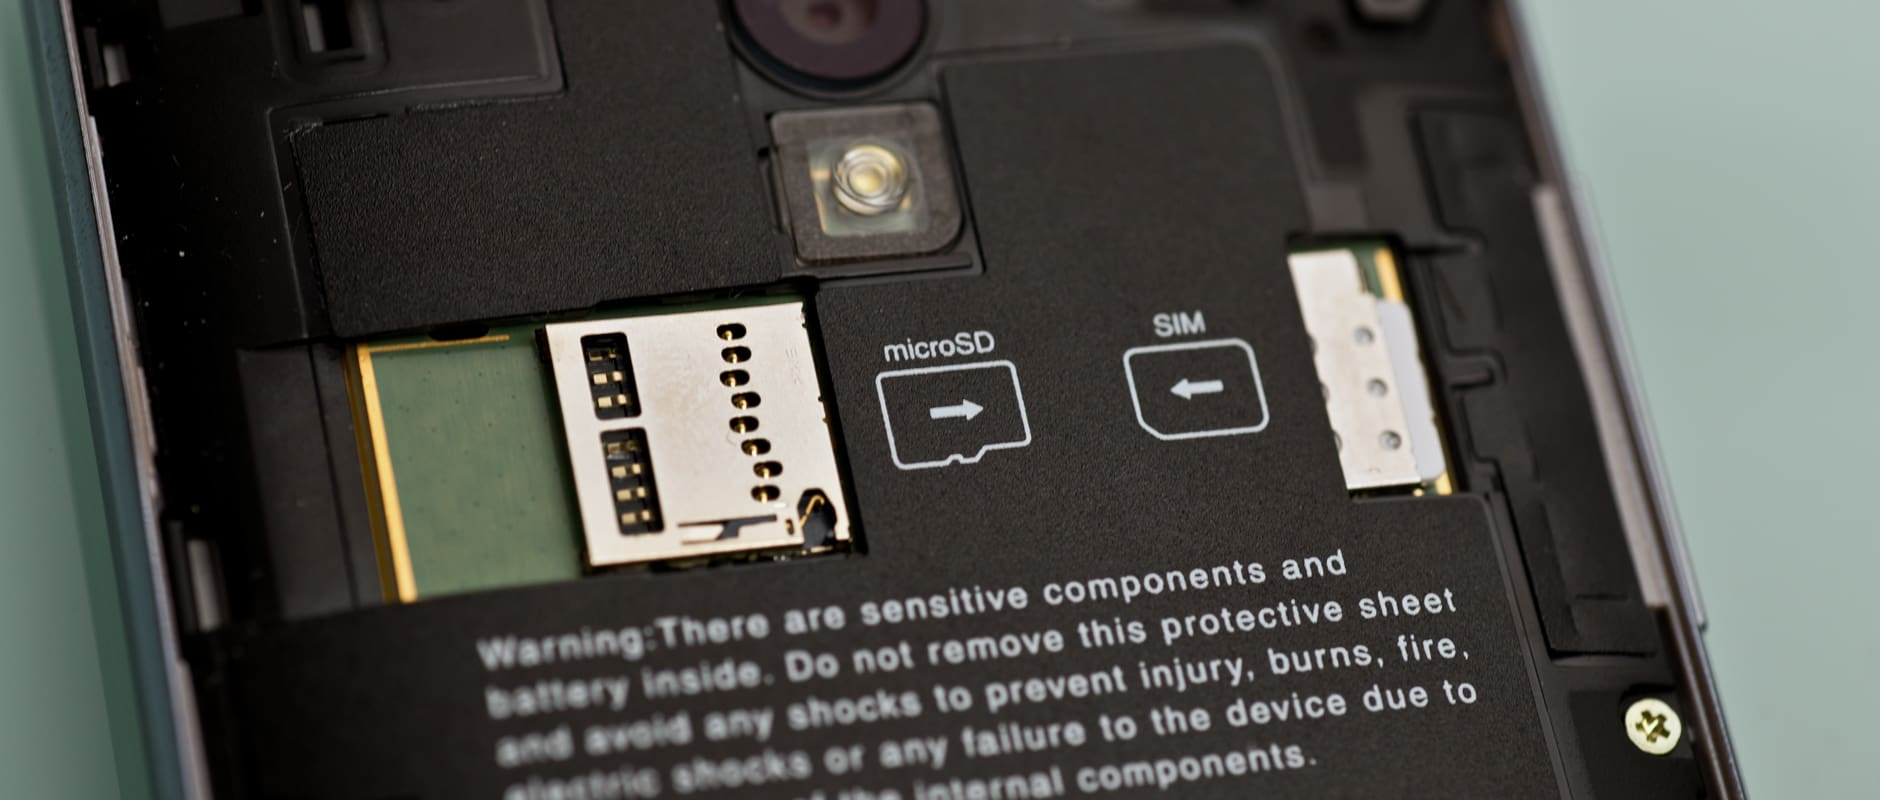 A photo of the Sharp Aquos Crystal's microSD card slot and SIM card slot.